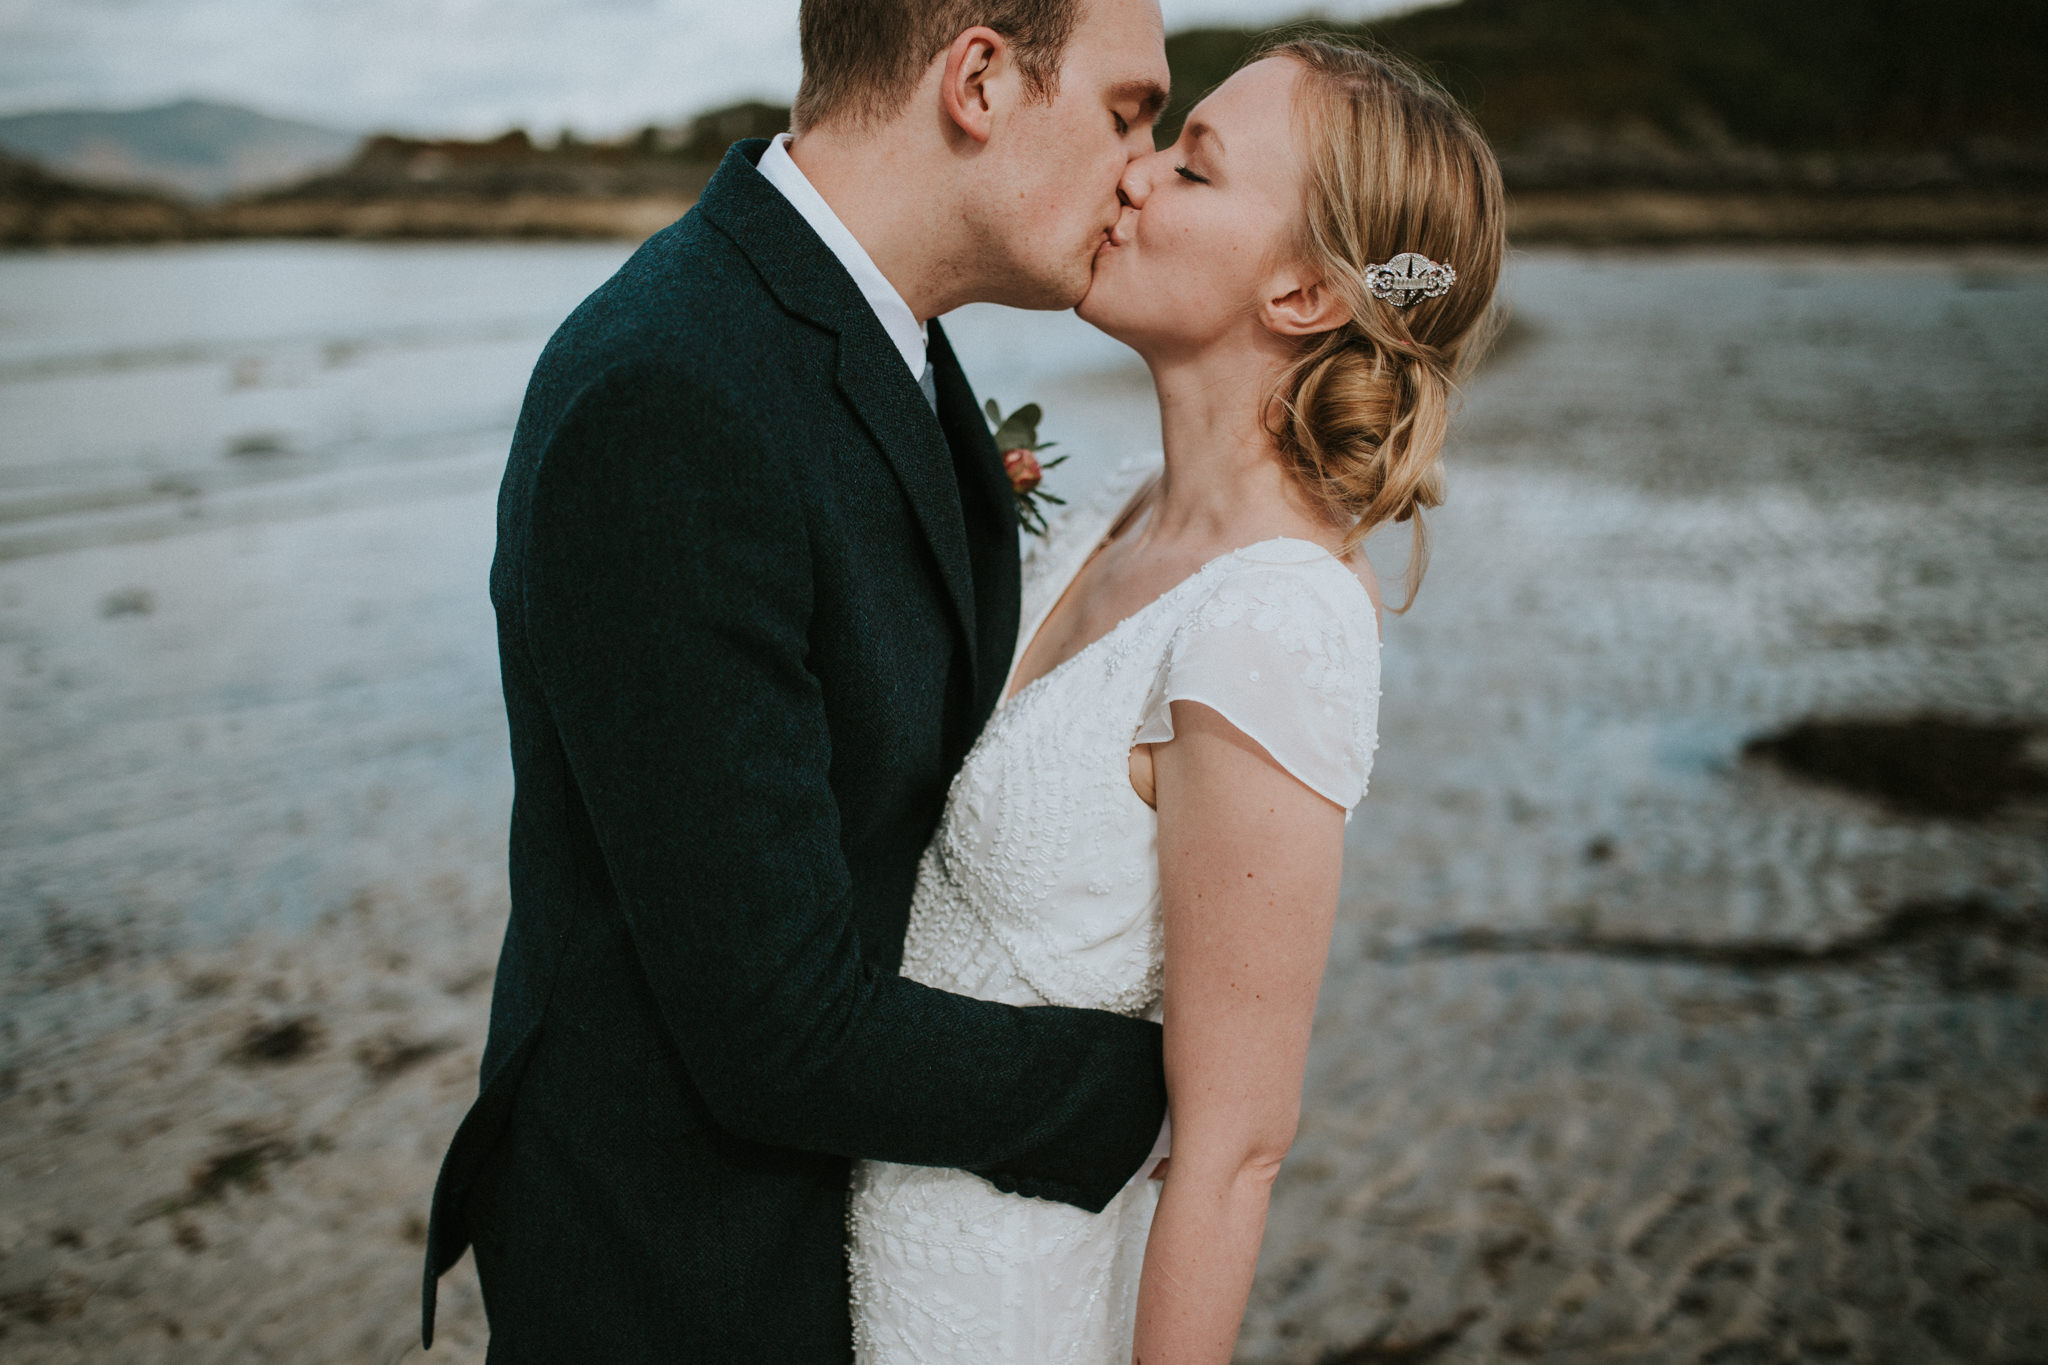 The wedding couple is kissing each other at the beach.